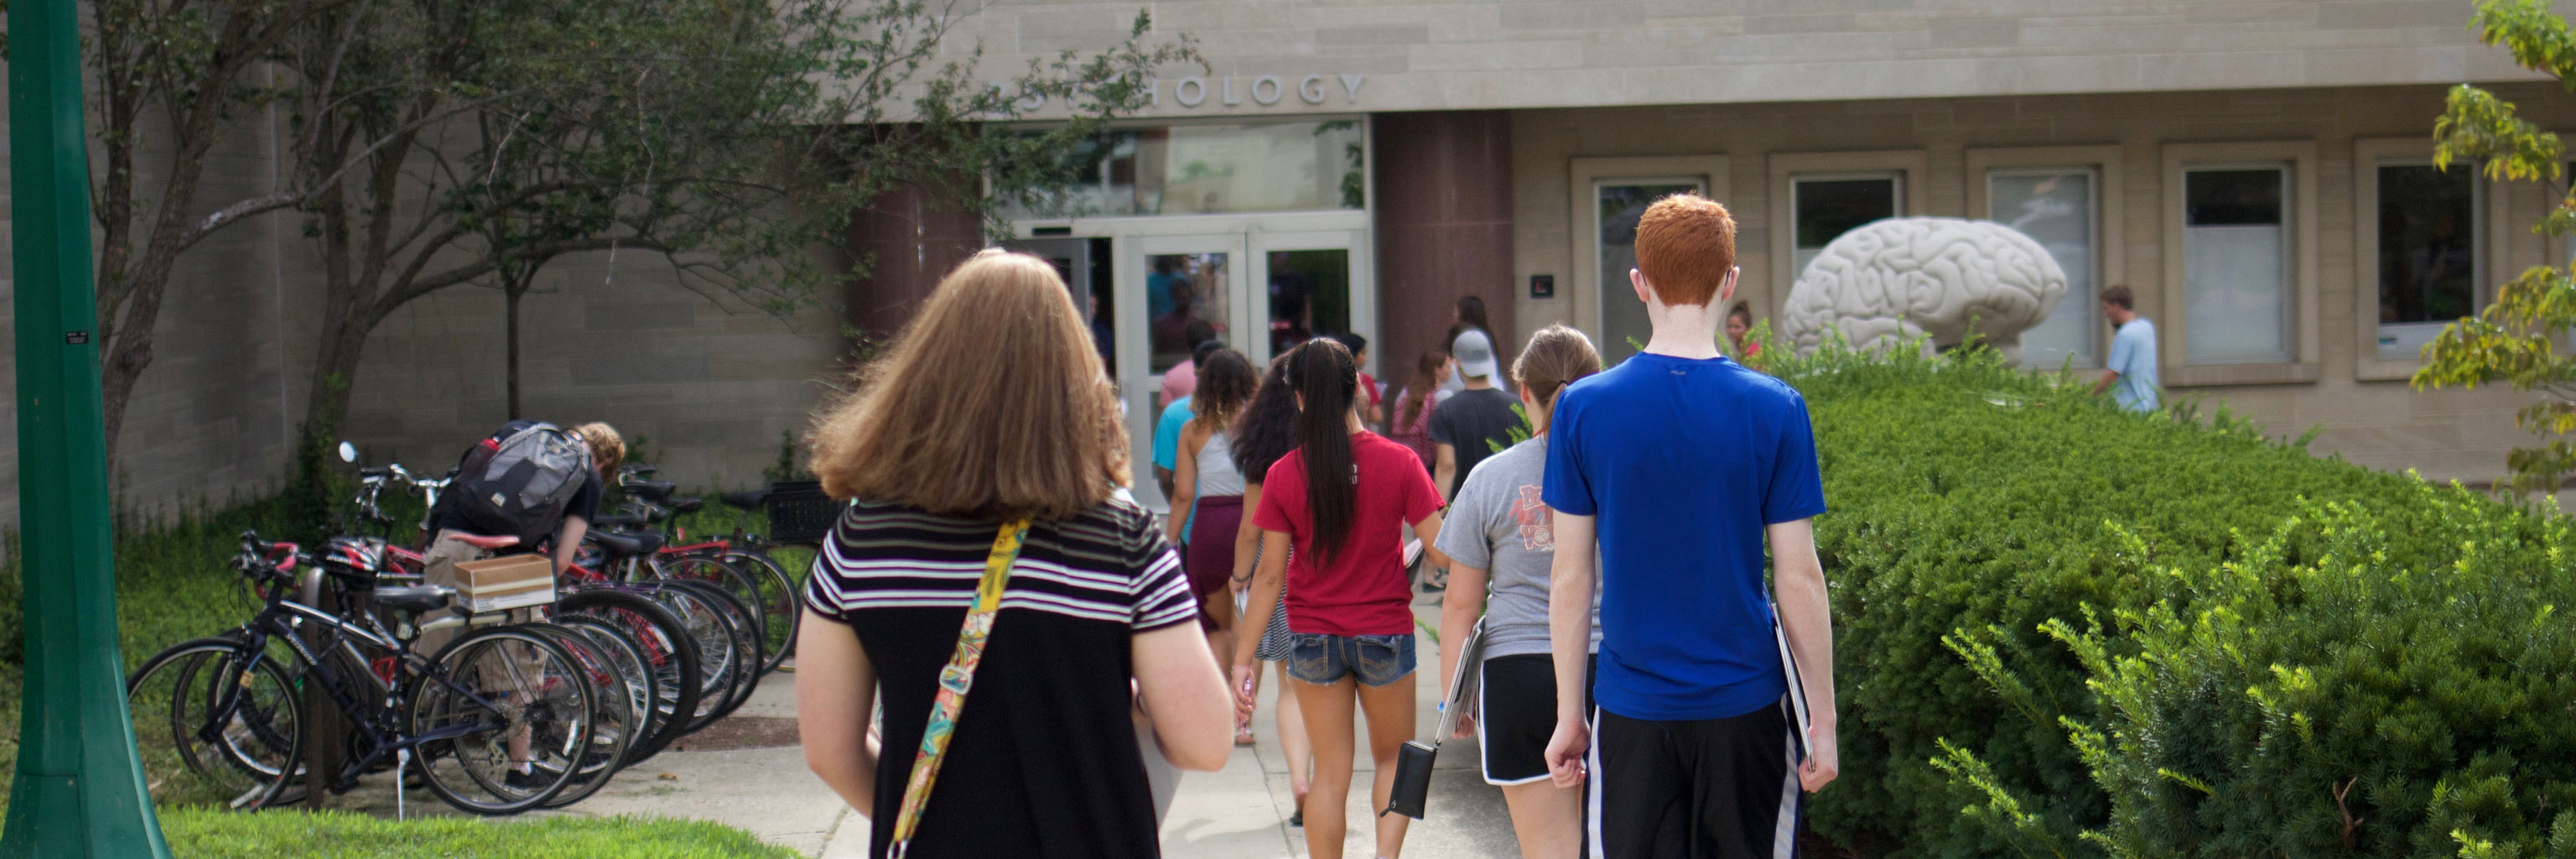 students in two lines walking into a building